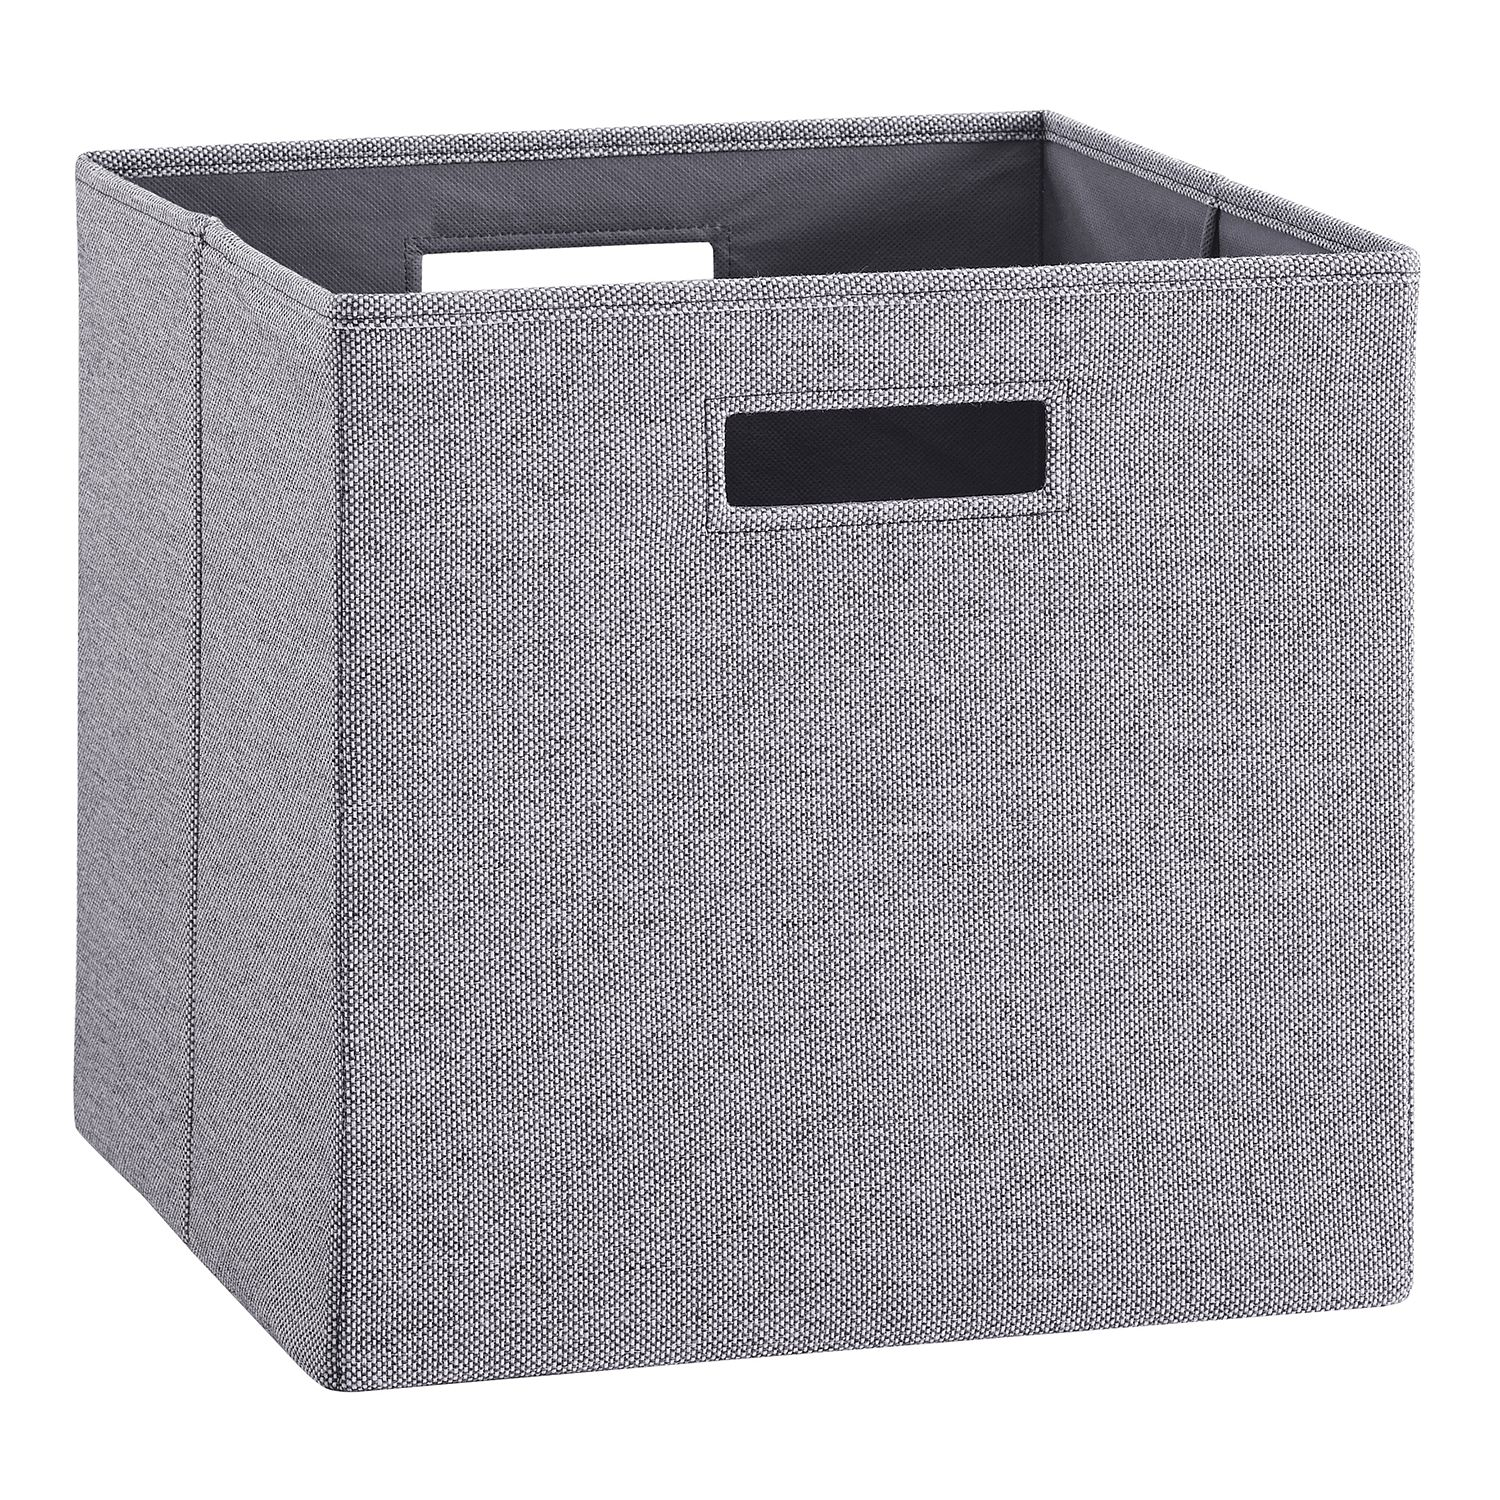 Folding Storage Bin  sc 1 st  Kohlu0027s & Grey Storage Bins u0026 Baskets | Kohlu0027s